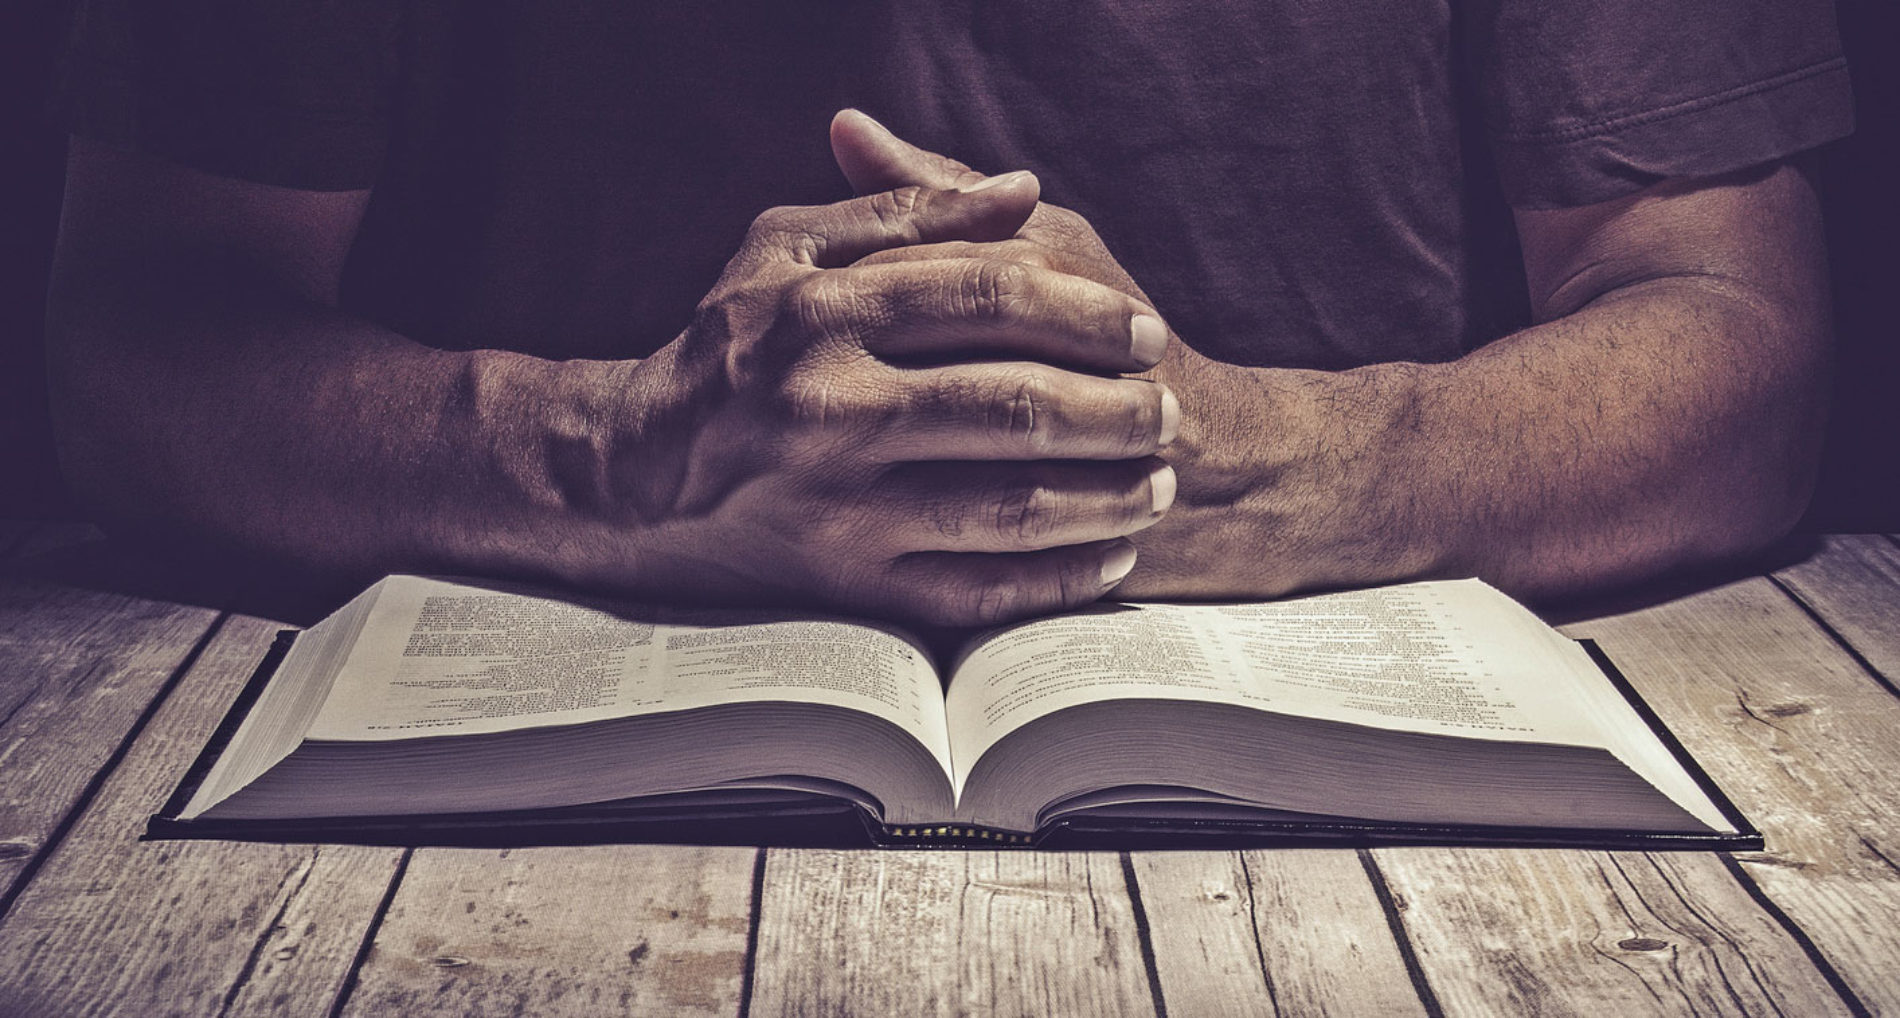 Why Using the Bible Against LGBTQ People is Irresponsible